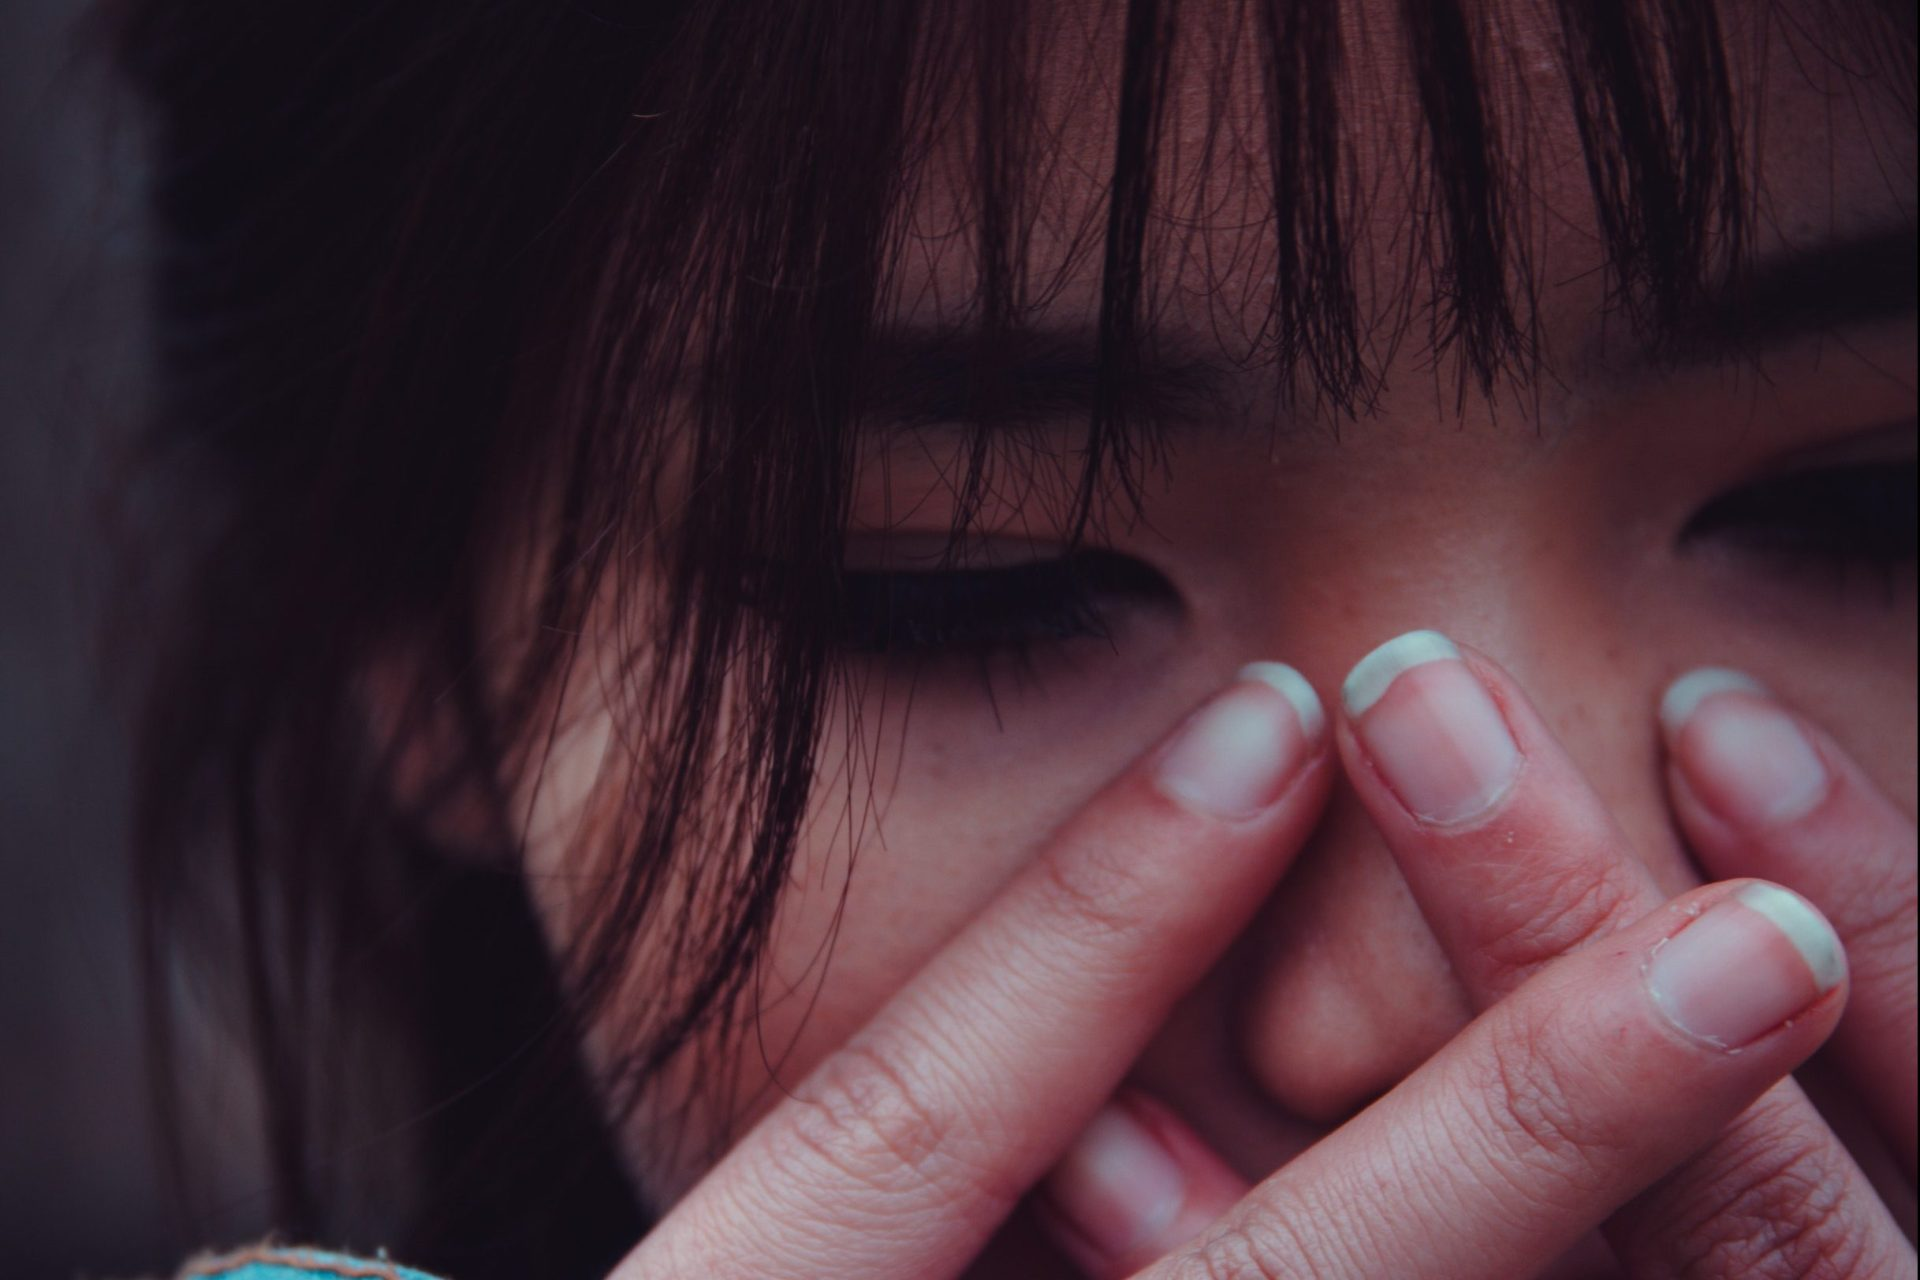 12 Things People With Anxiety Do That May Seem Like 'Just Worrying'